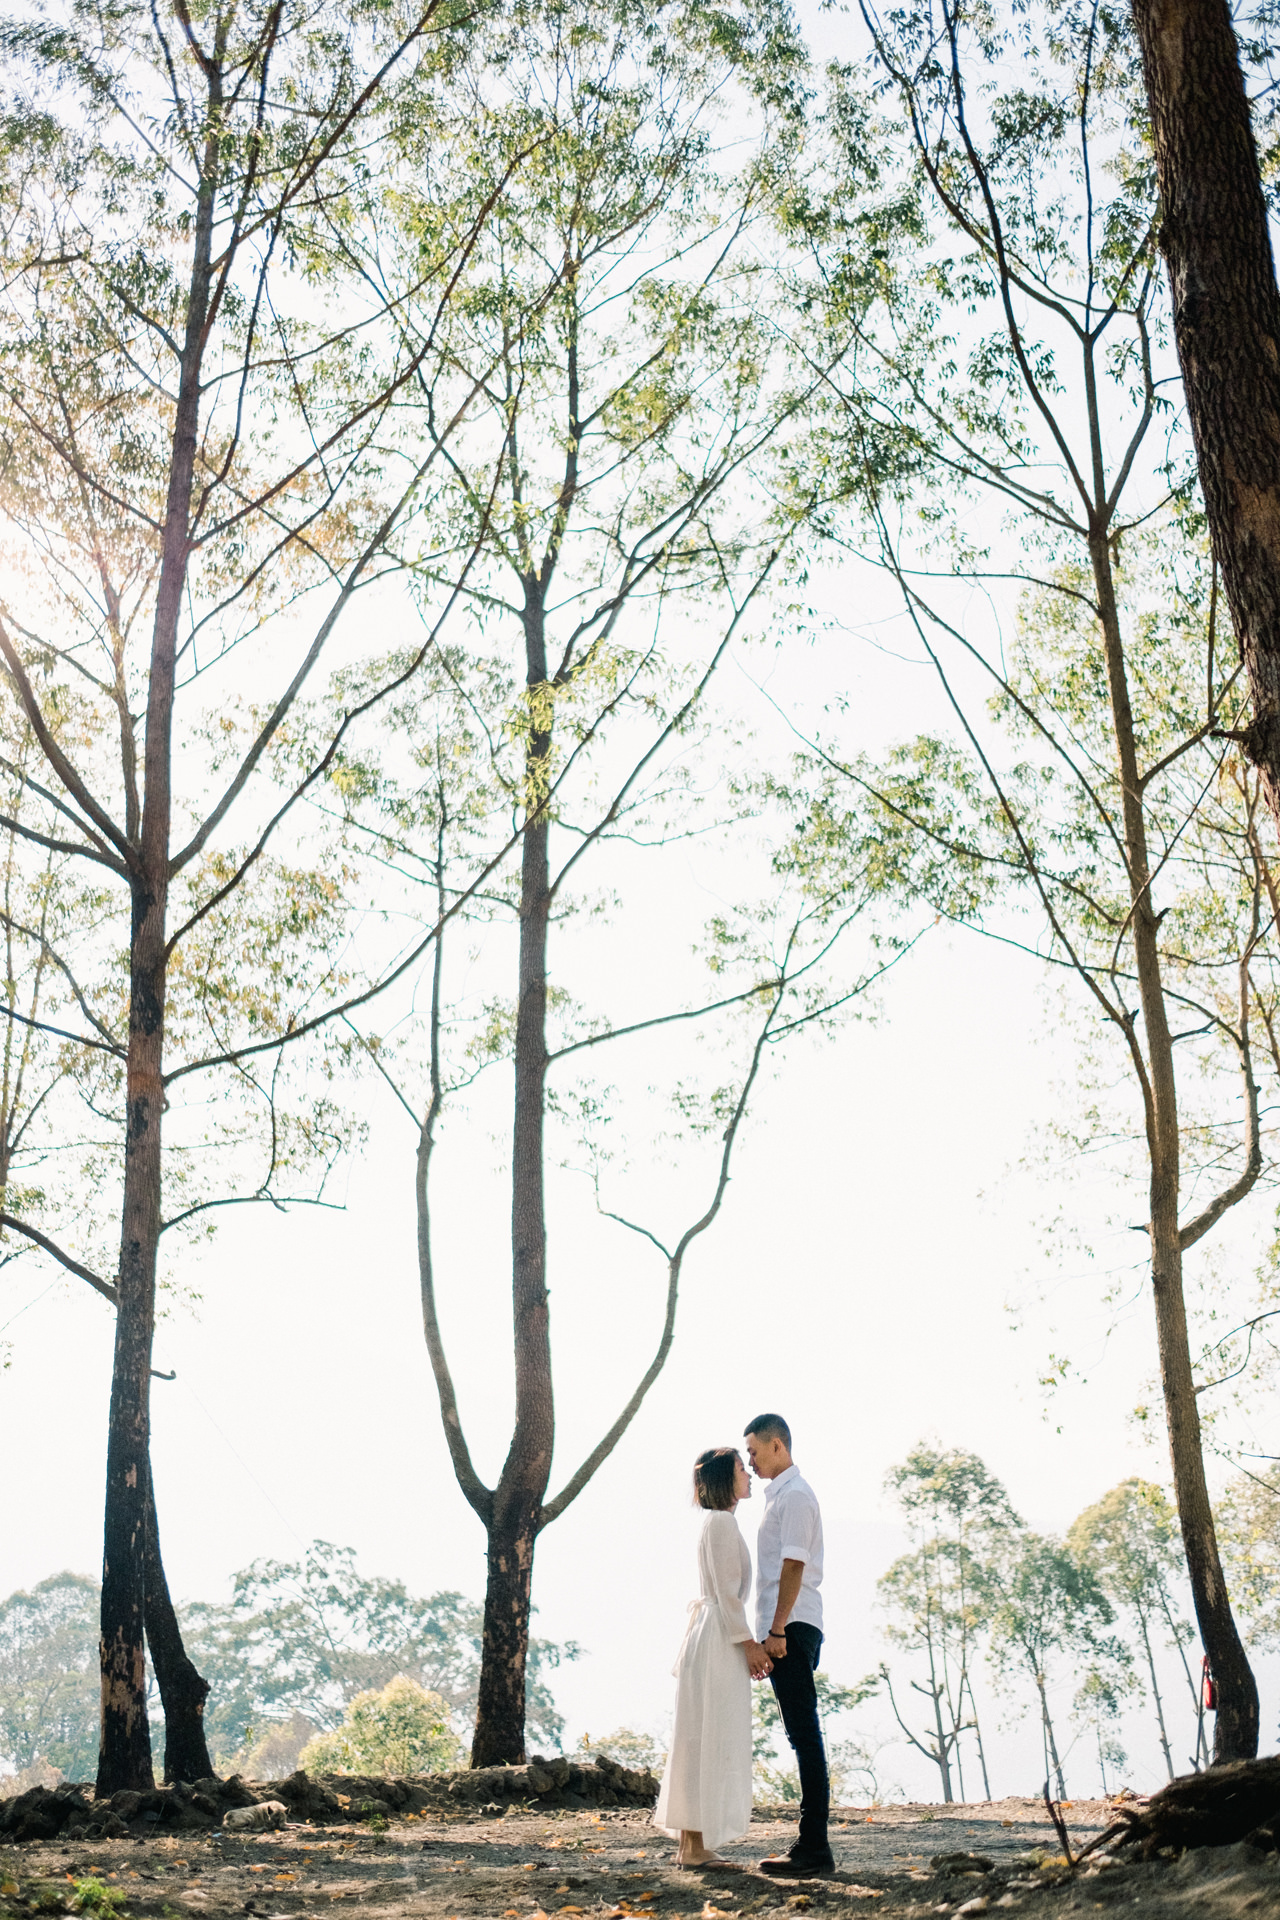 T&K: Bali Prewedding Photo Session in The Mountains 12